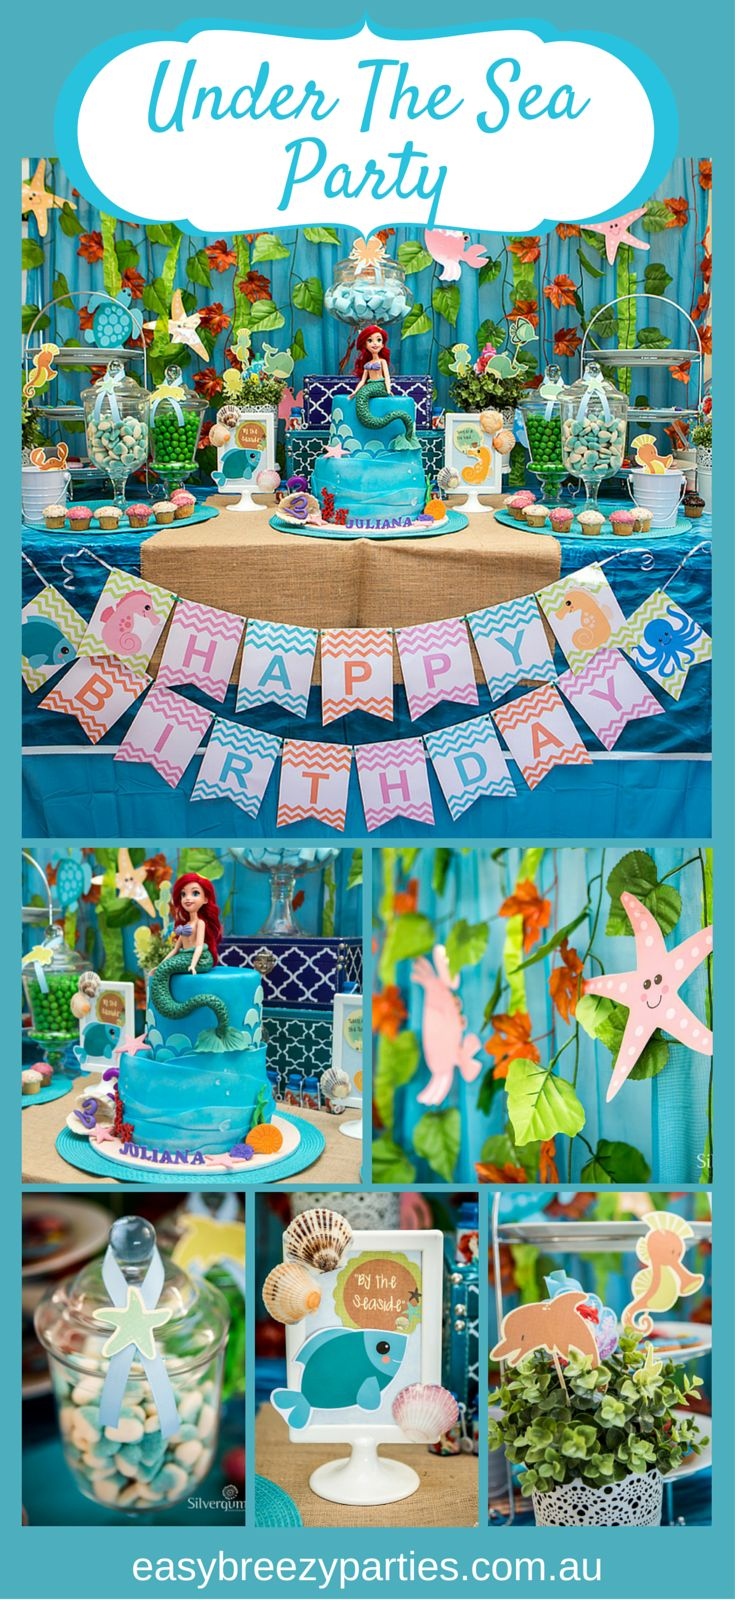 Gorgeous under the water / Little Mermaid themed candy buffet by #easybreezyparties in Melbourne, Australia. http://www.easybreezyparties.com.au/party-themes/octonauts-under-the-sea-theme-2.html